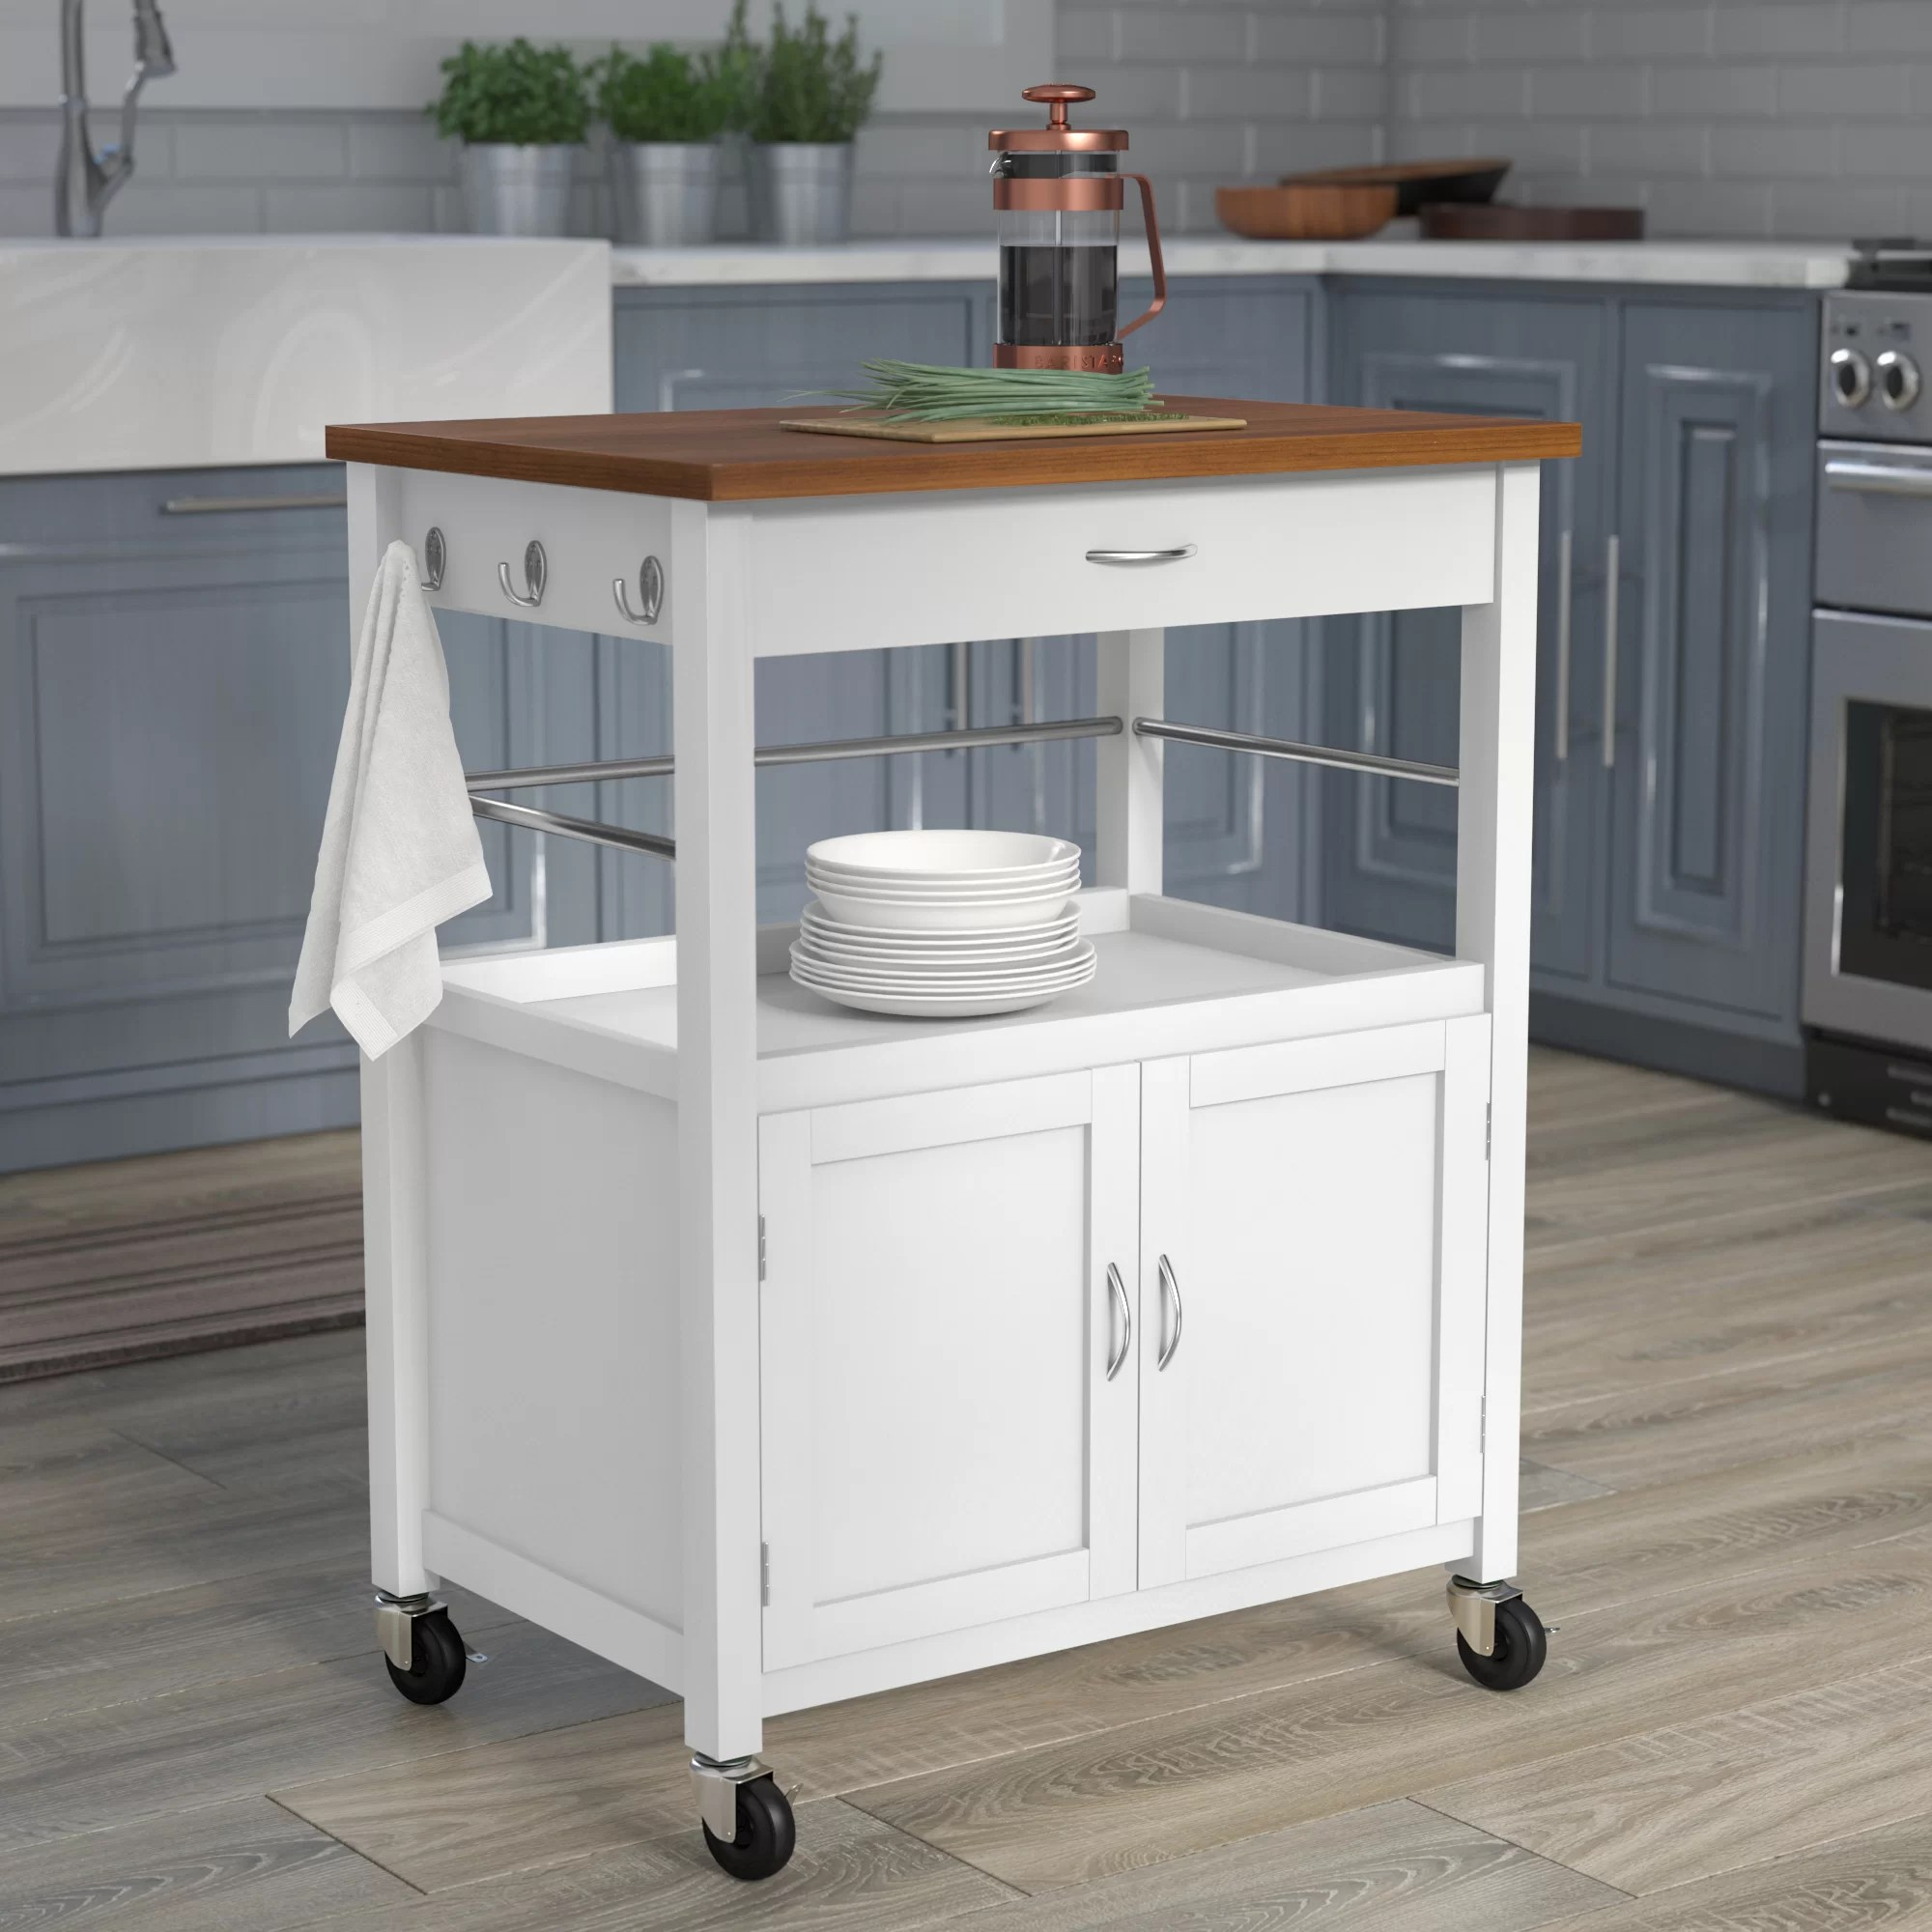 Chopping Block Kitchen Island Kibler Kitchen Island Cart With Natural Butcher Block Bamboo Top